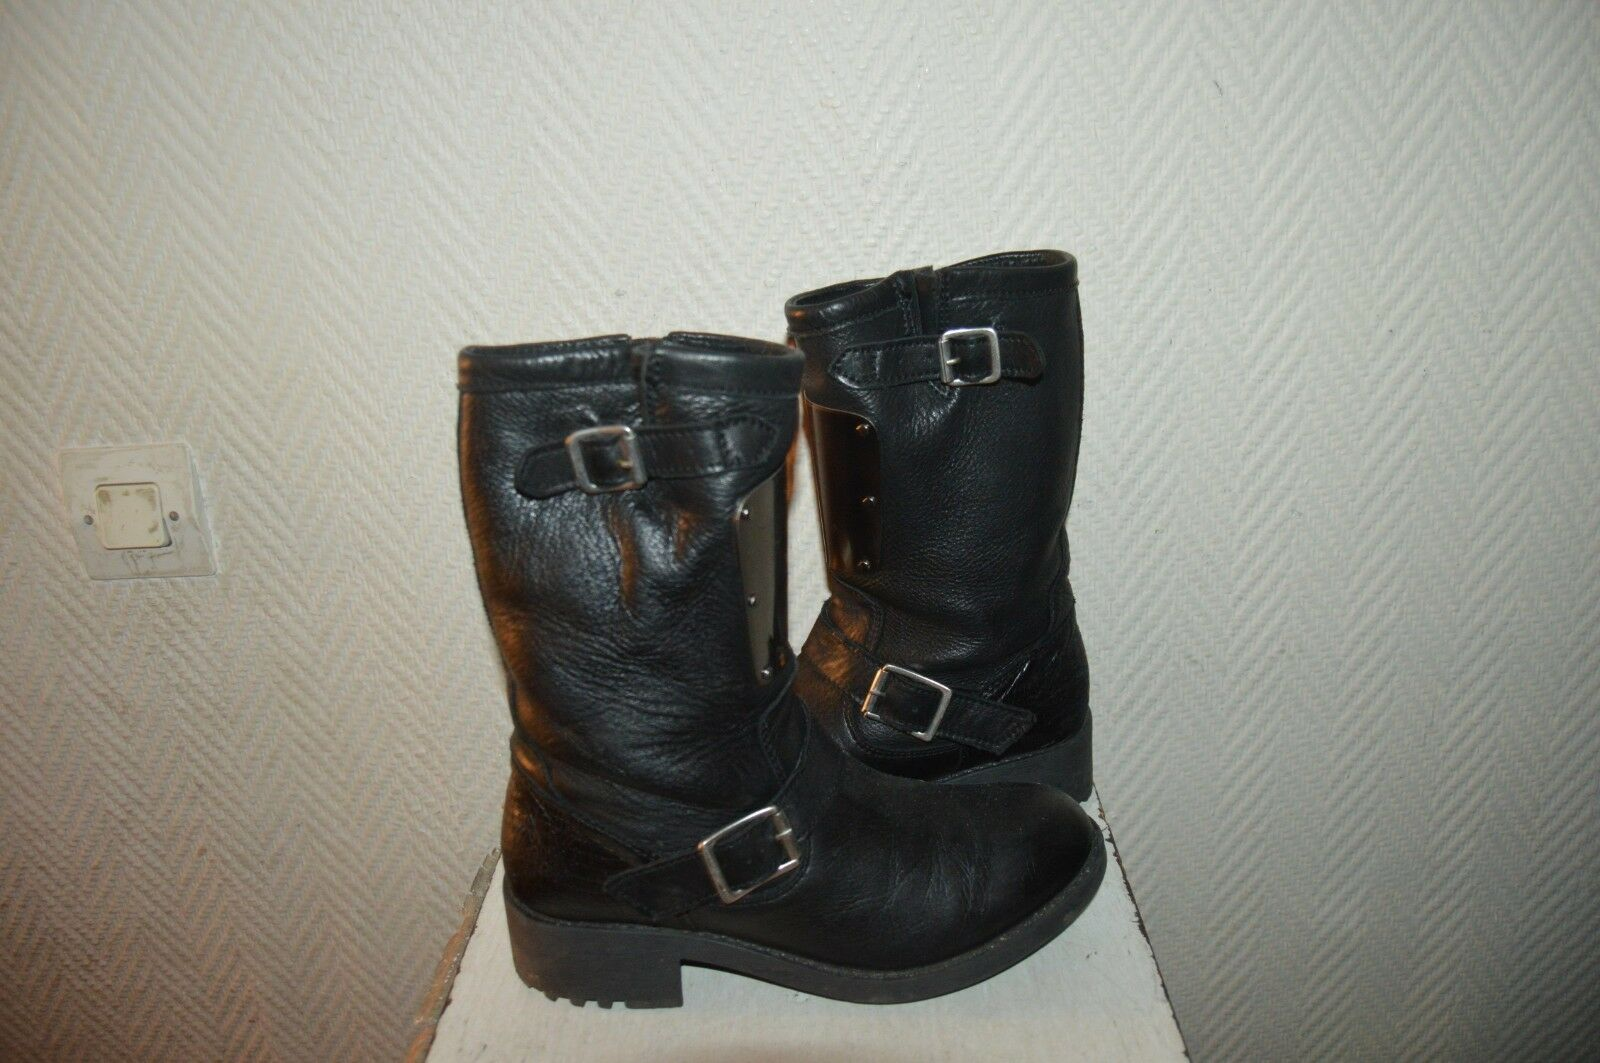 CHAUSSURE BOTTES CUIR METAL OAKSFIELD  size 37  LEATHER BOOTS BOTAS STIVALI